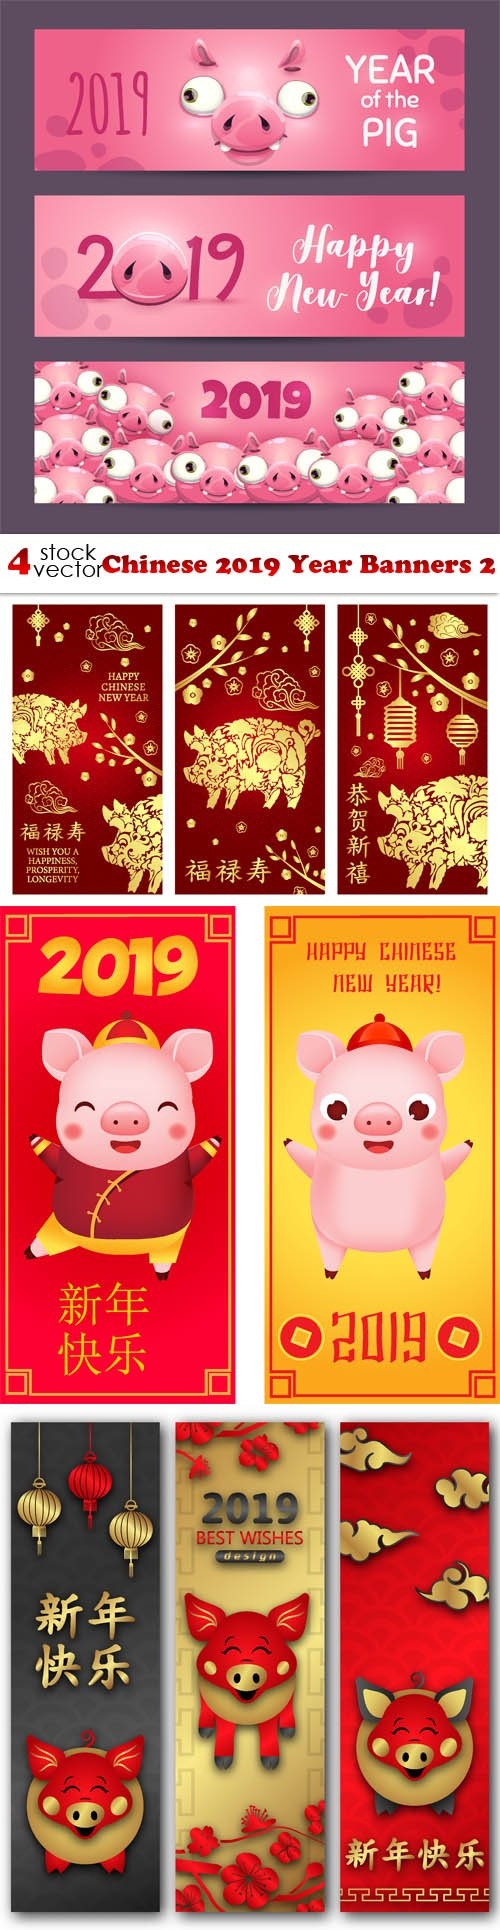 Vectors - Chinese 2019 Year Banners 2